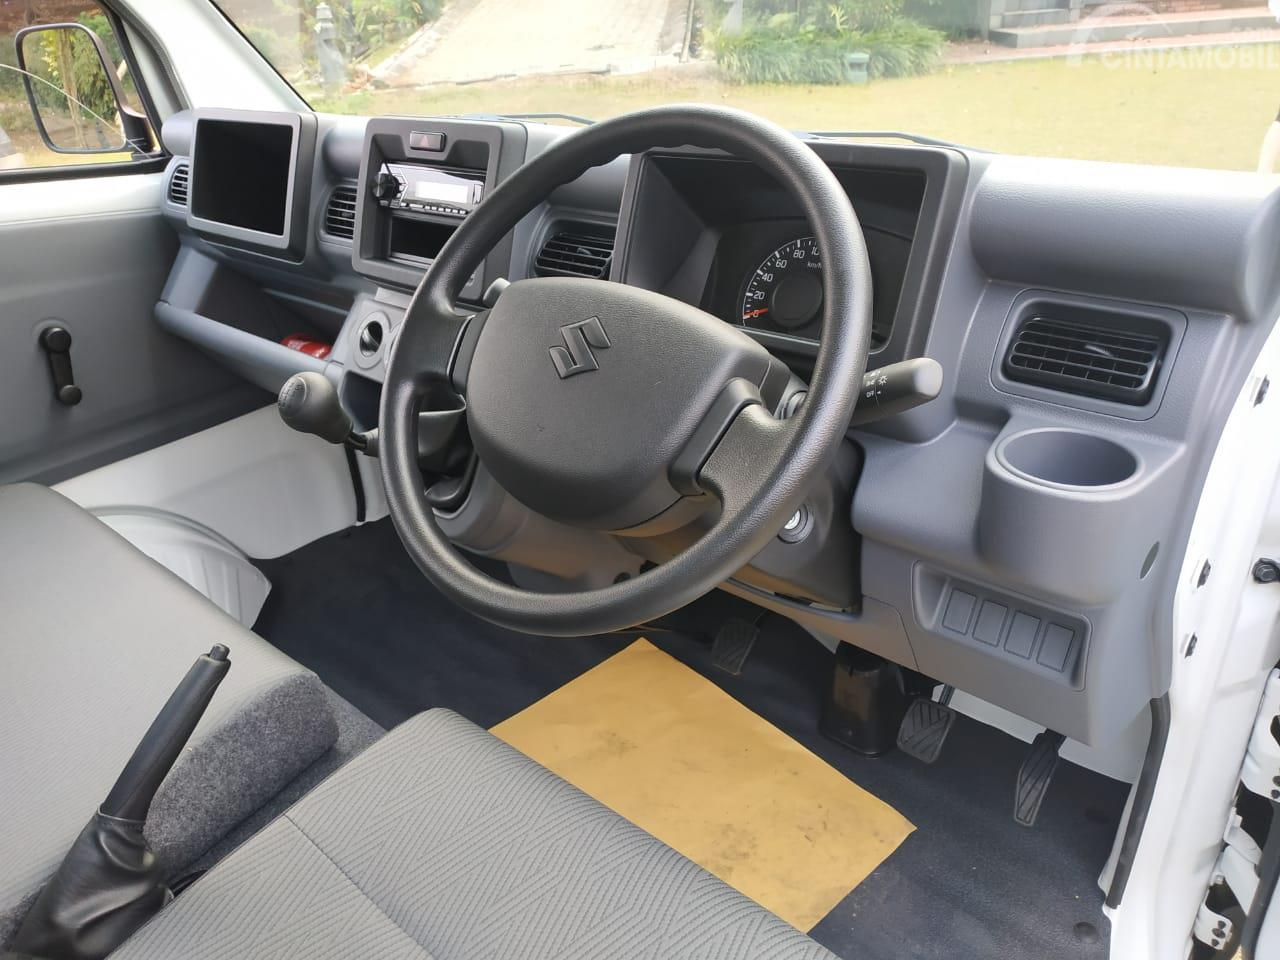 Gambar menunjukkan layout dasbor Suzuki New Carry Pick Up Wide Deck 2019